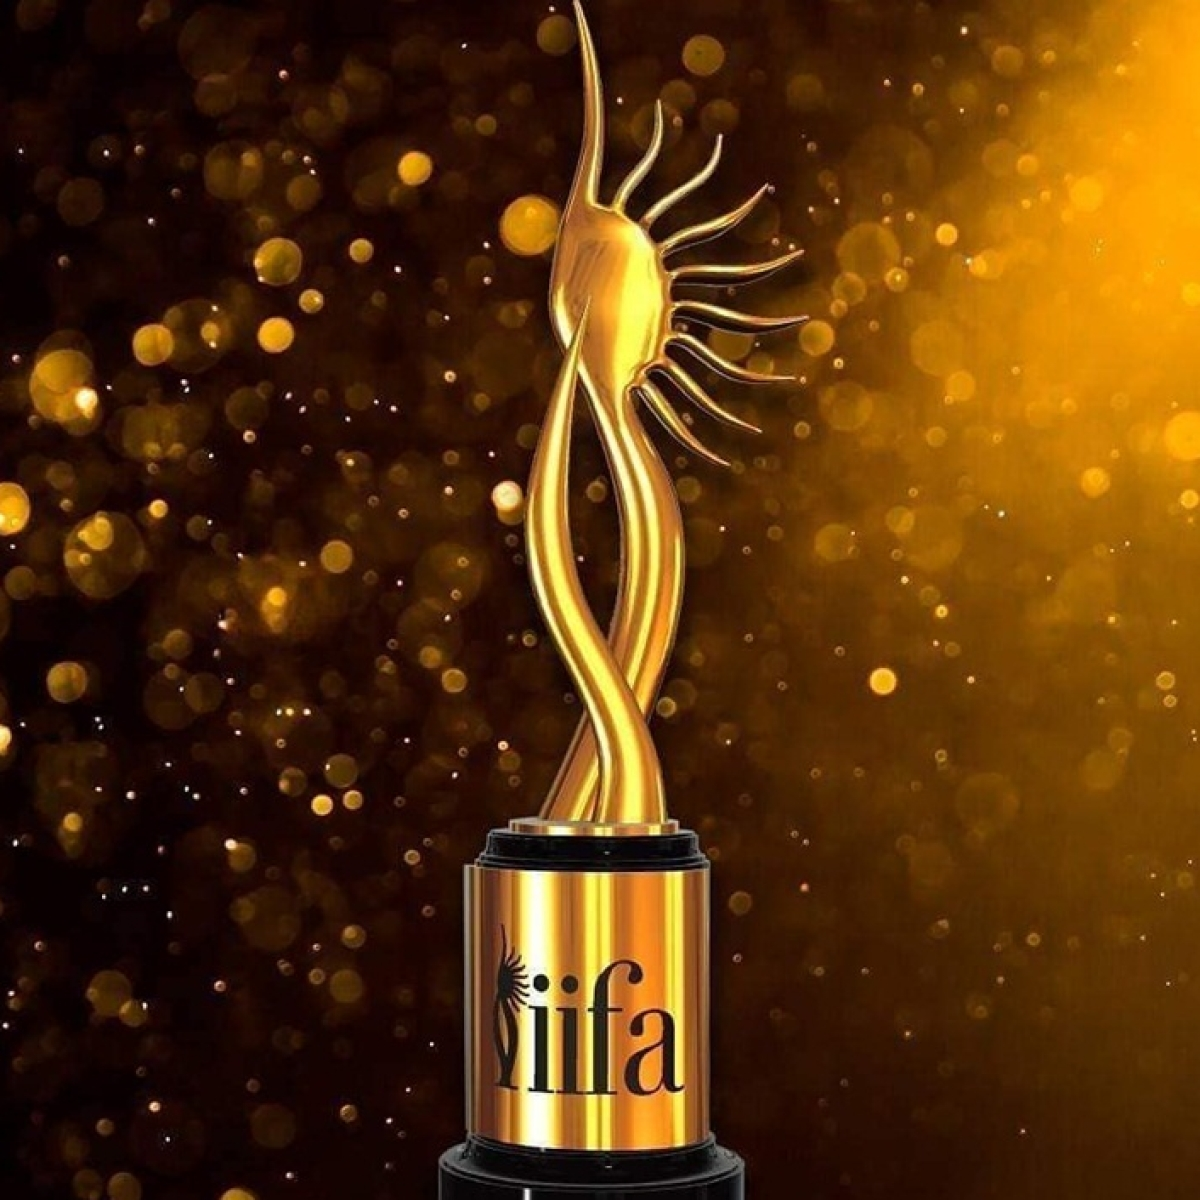 Mumbai to host 2Oth edition of IIFA in September 2019